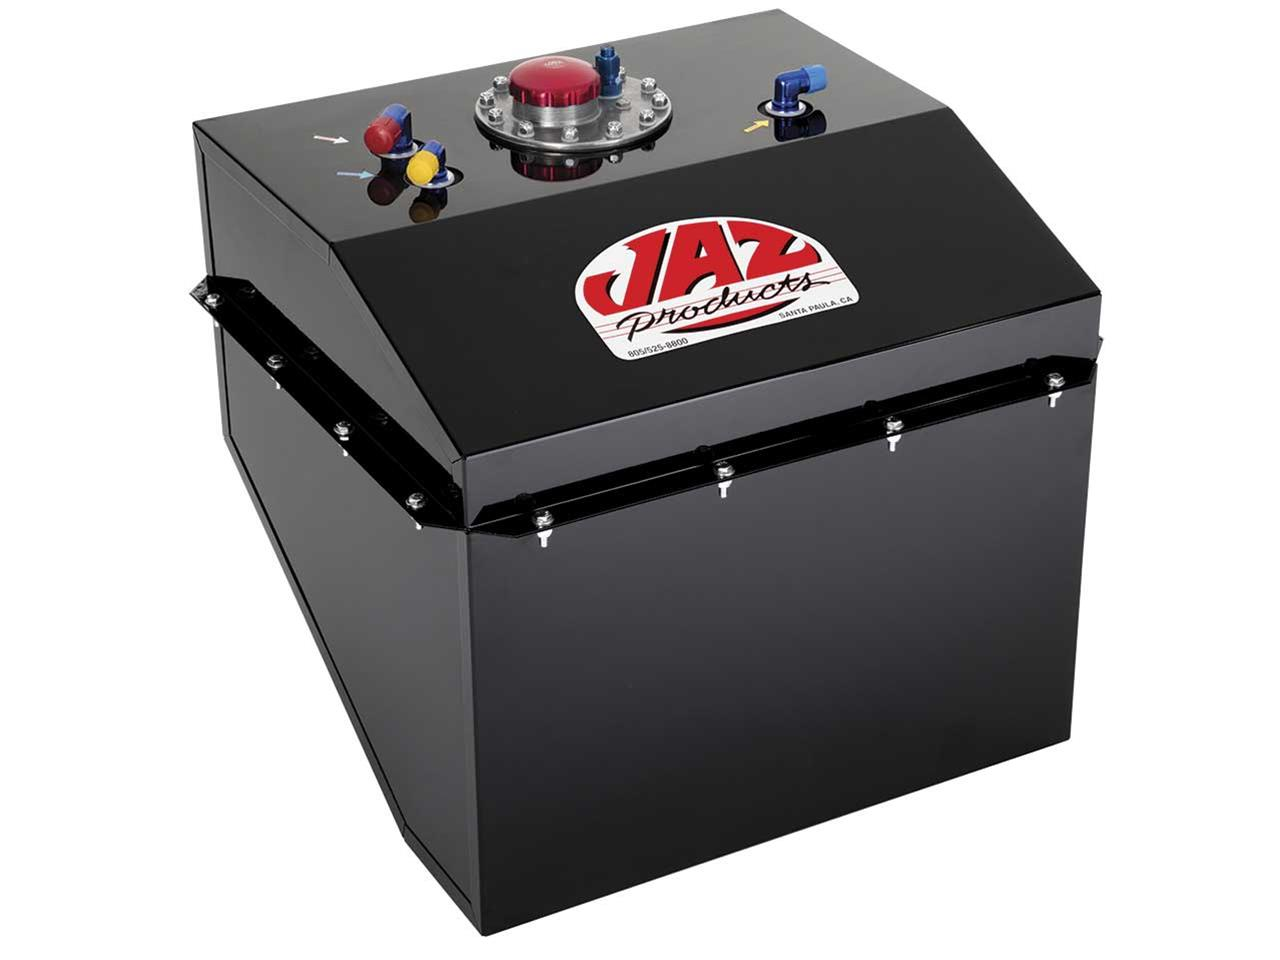 Jaz 22 Gallon Wedge Fuel Cell - Black